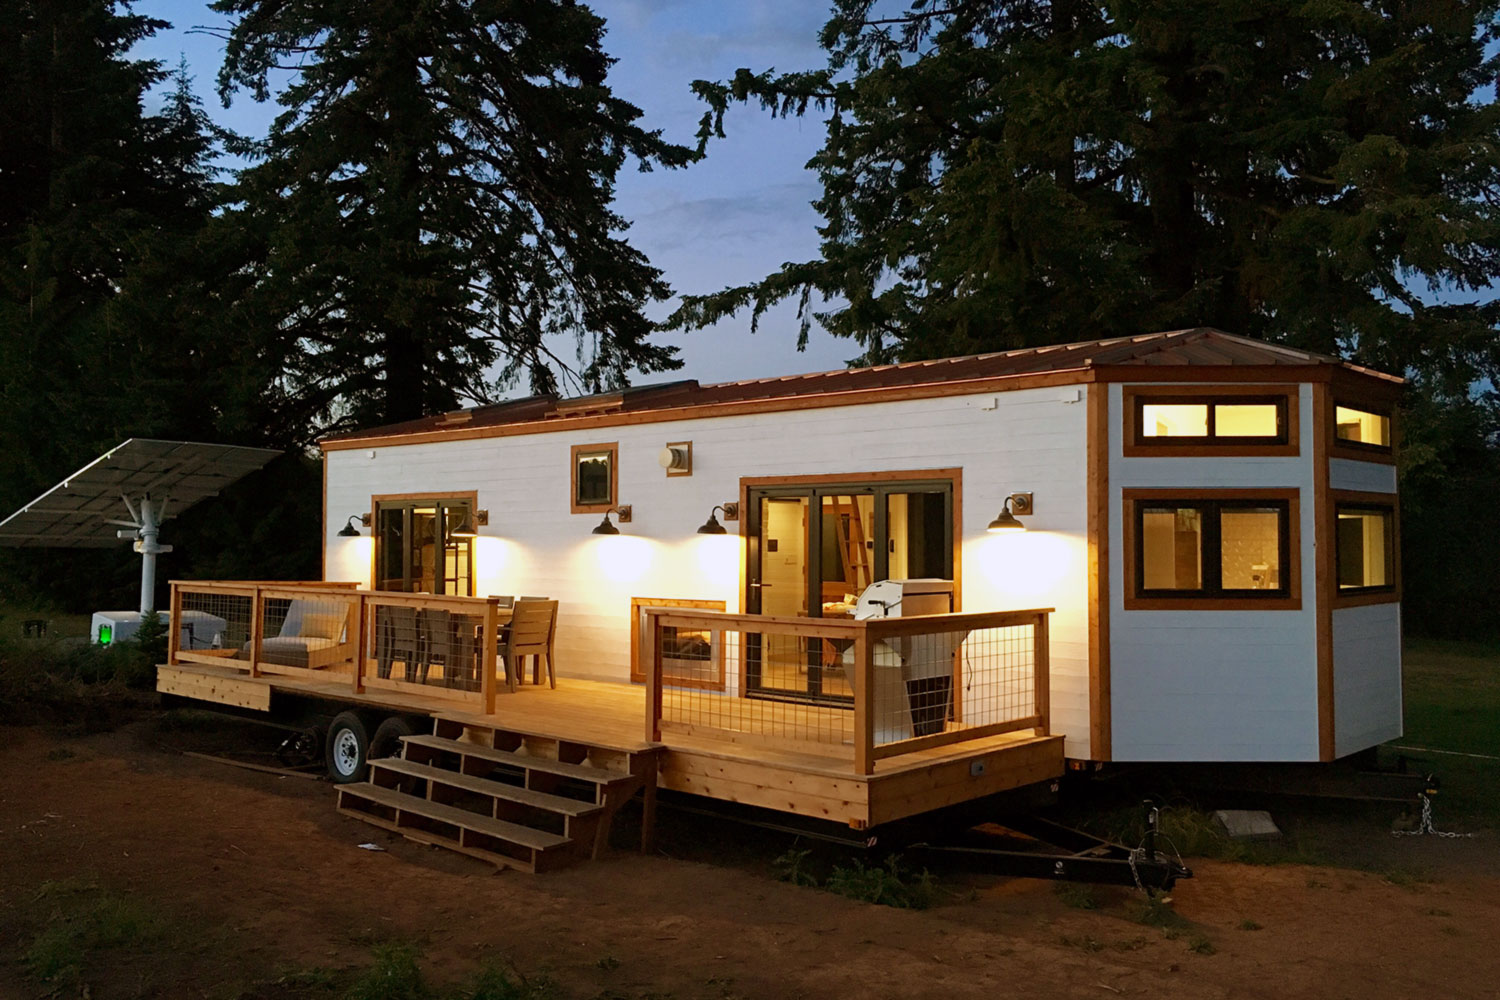 Tiny house town the hawaii house by tiny heirloom for Building a little house